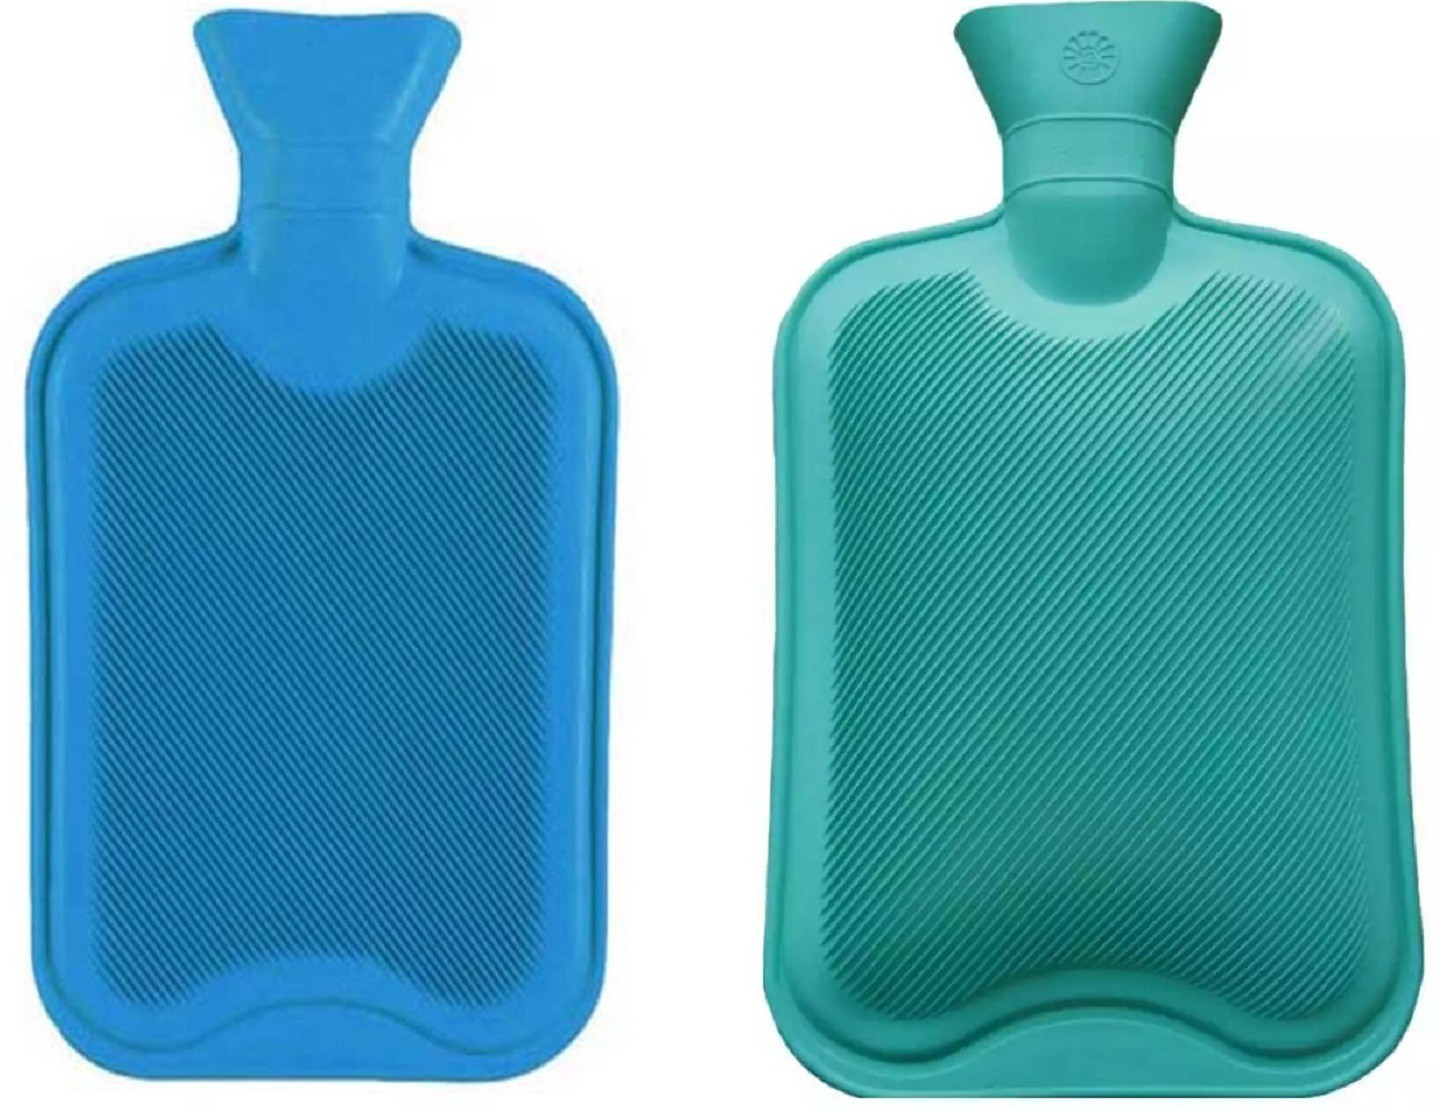 Ramco Pain Reliever Comboss Non-electrical 3 L Hot Water Bag(Blue, Green)